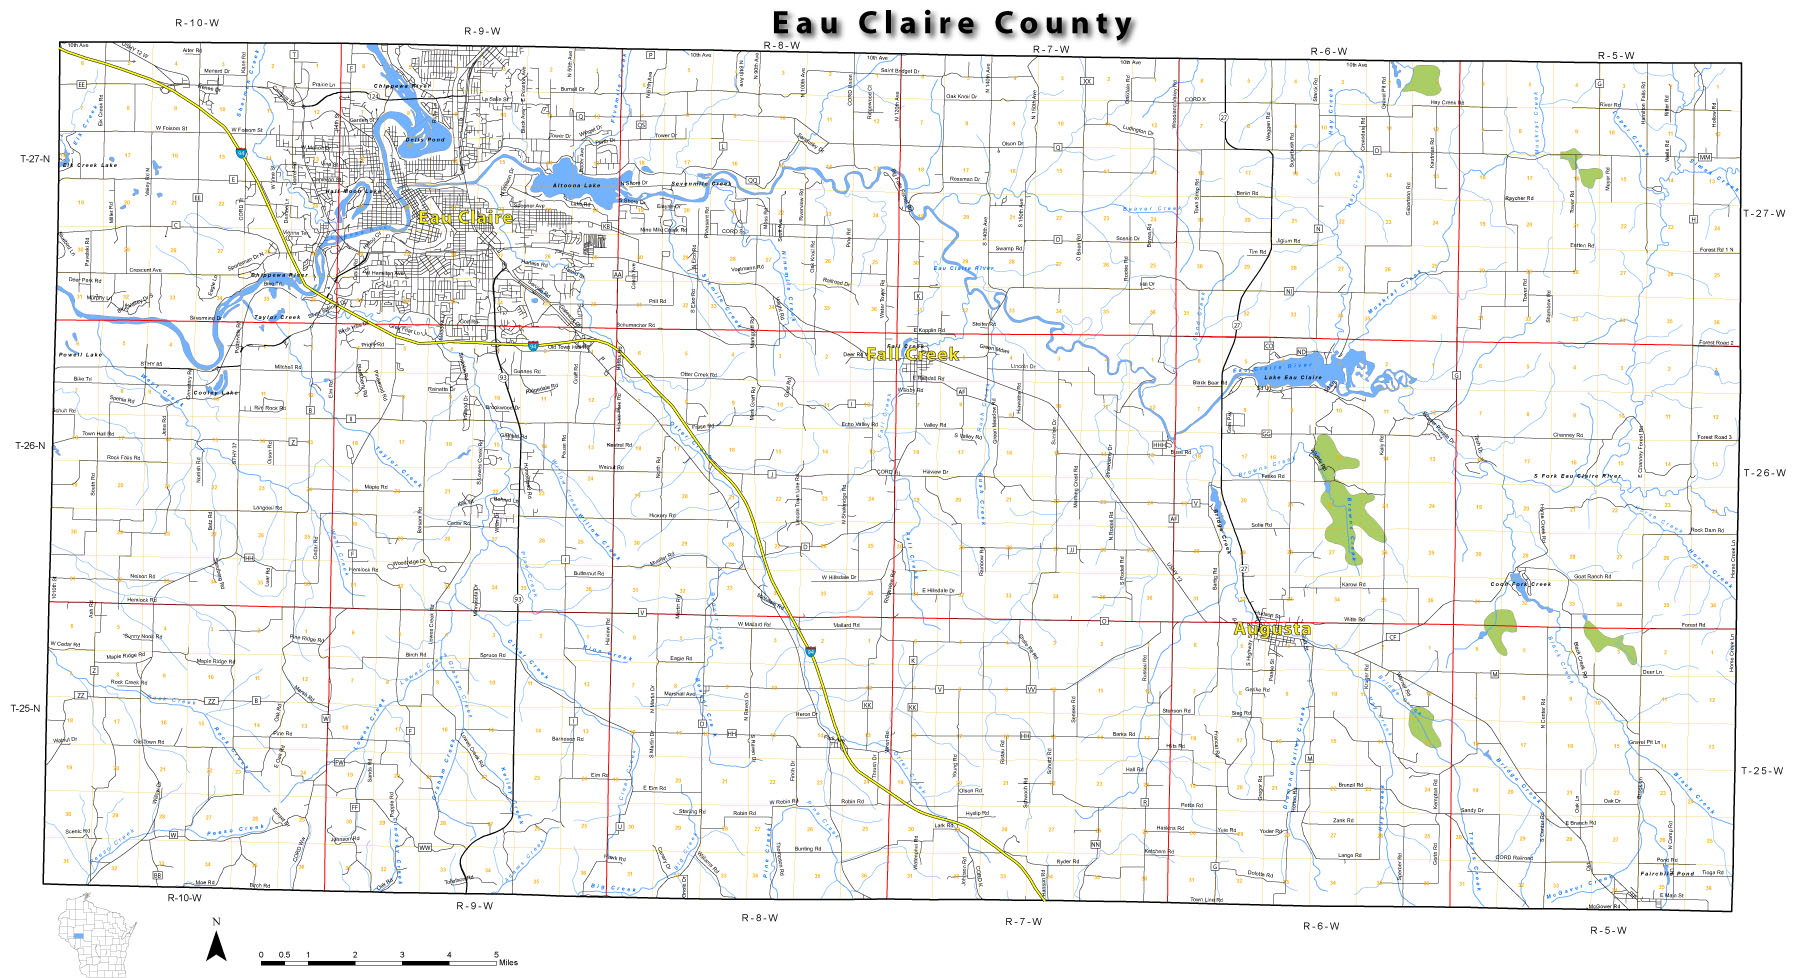 EauClaireCounty Map Of Union Eau Claire County Town on map of arthur, map of brunswick, map of wisconsin river, map of central time zone, map of eau claire area, map of milwaukee, map of racine, map of auburn, map of delmar, map of st. louis, map of superior, map wi county, map of minneapolis, map of prescott, map of stanley, map of beaver dam, map of cleveland, map of oshkosh, map of osceola, map of green bay,